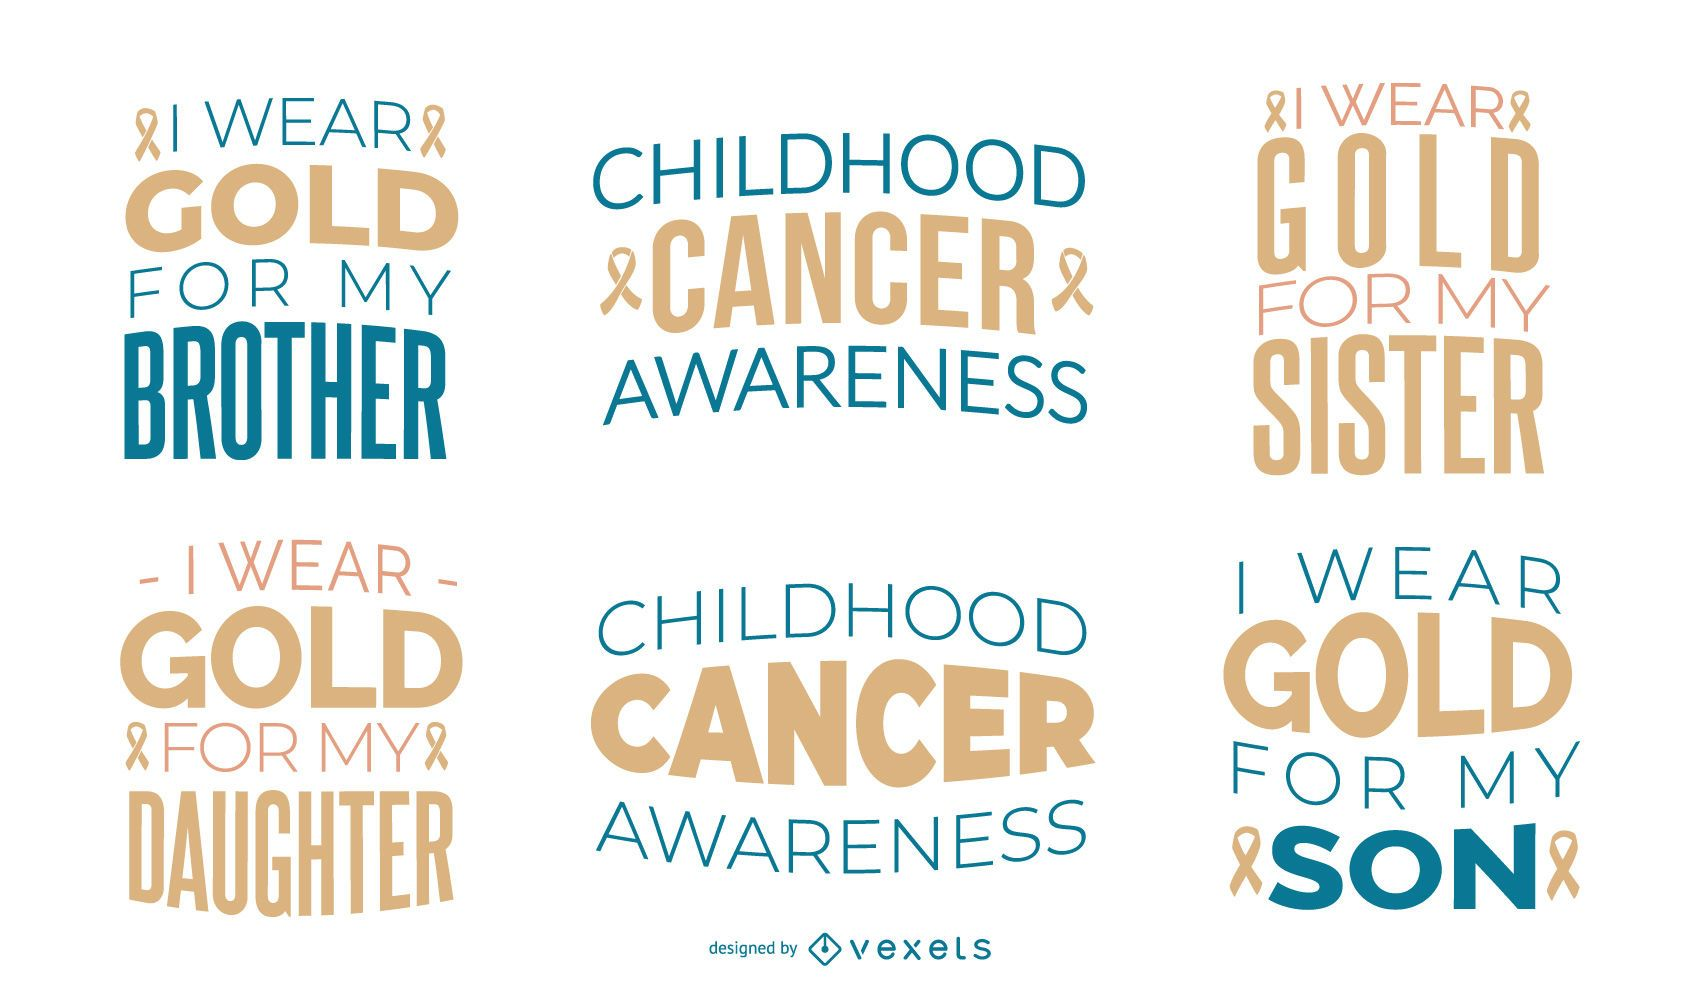 Childhood cancer awareness quote set